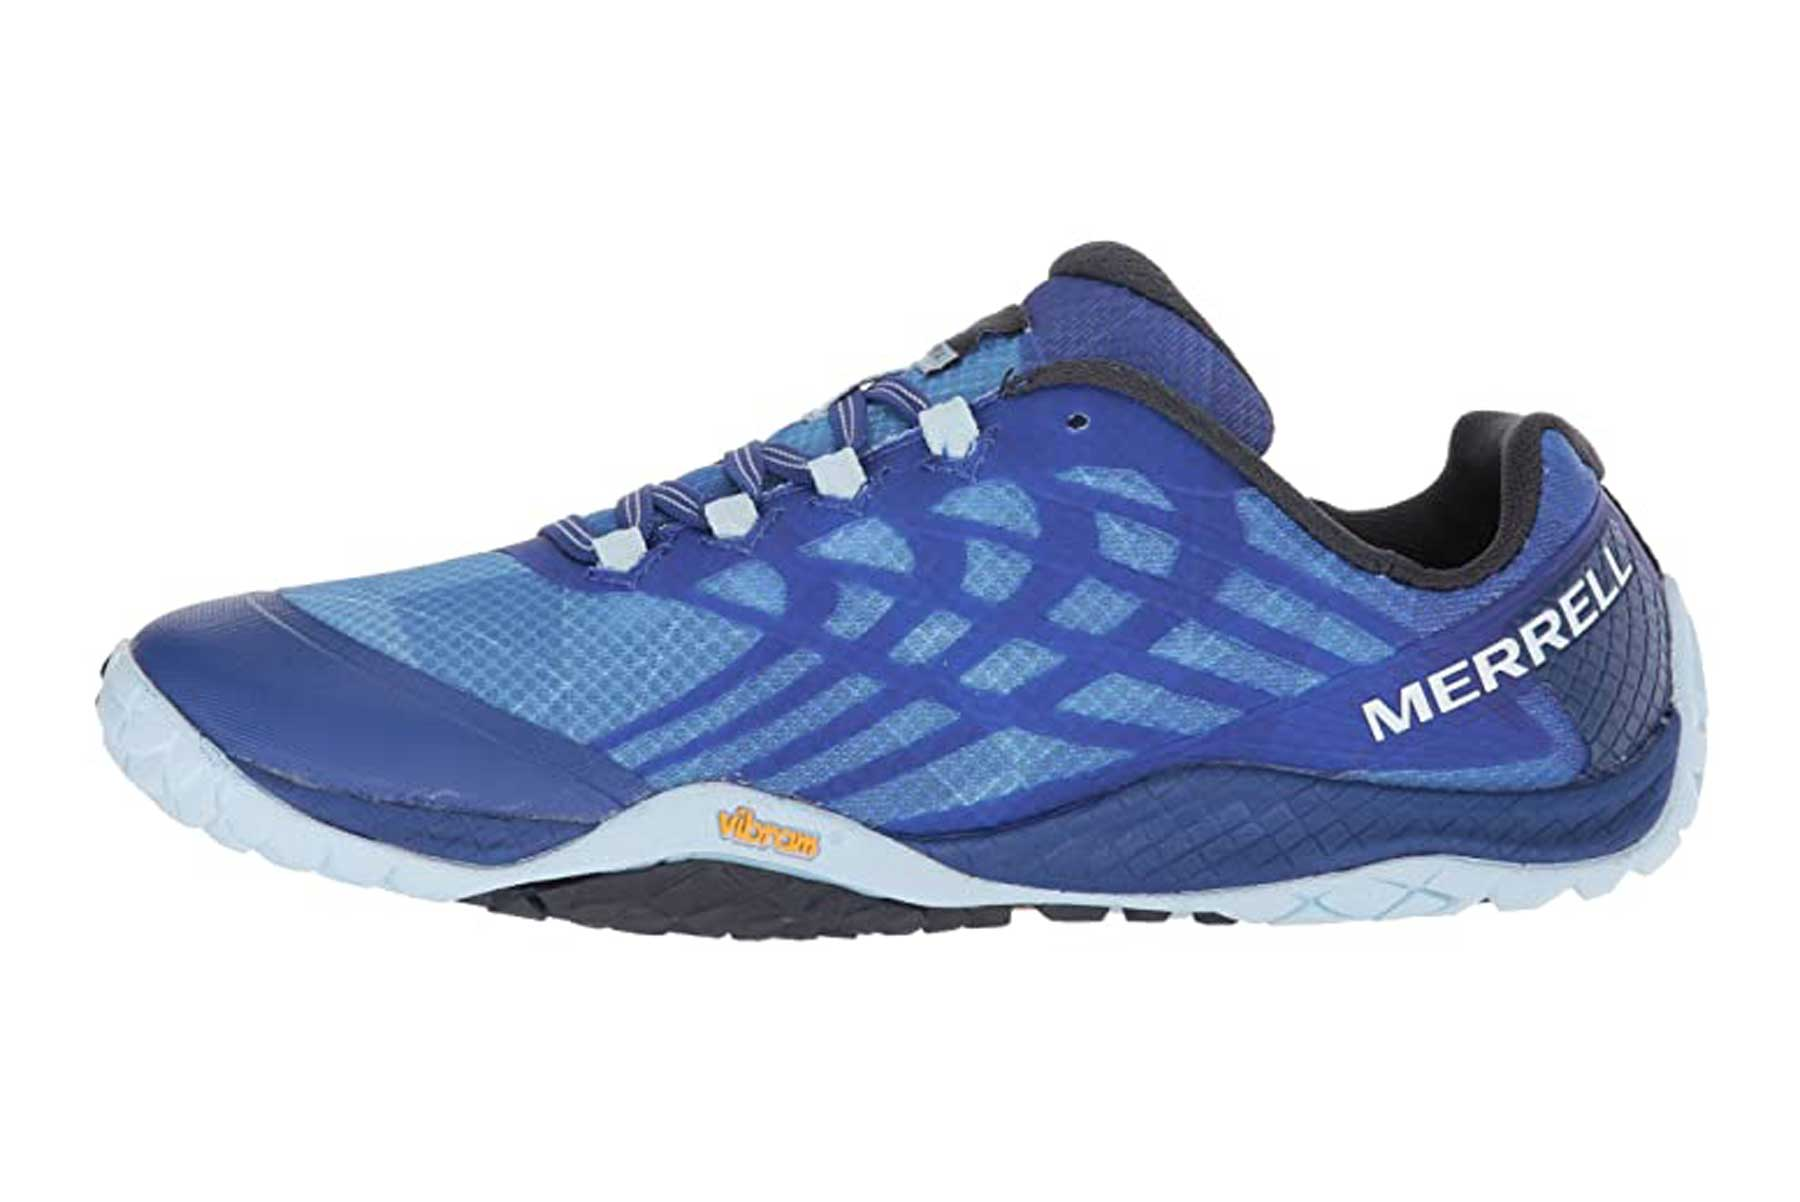 Merrell Women's Trail Glove